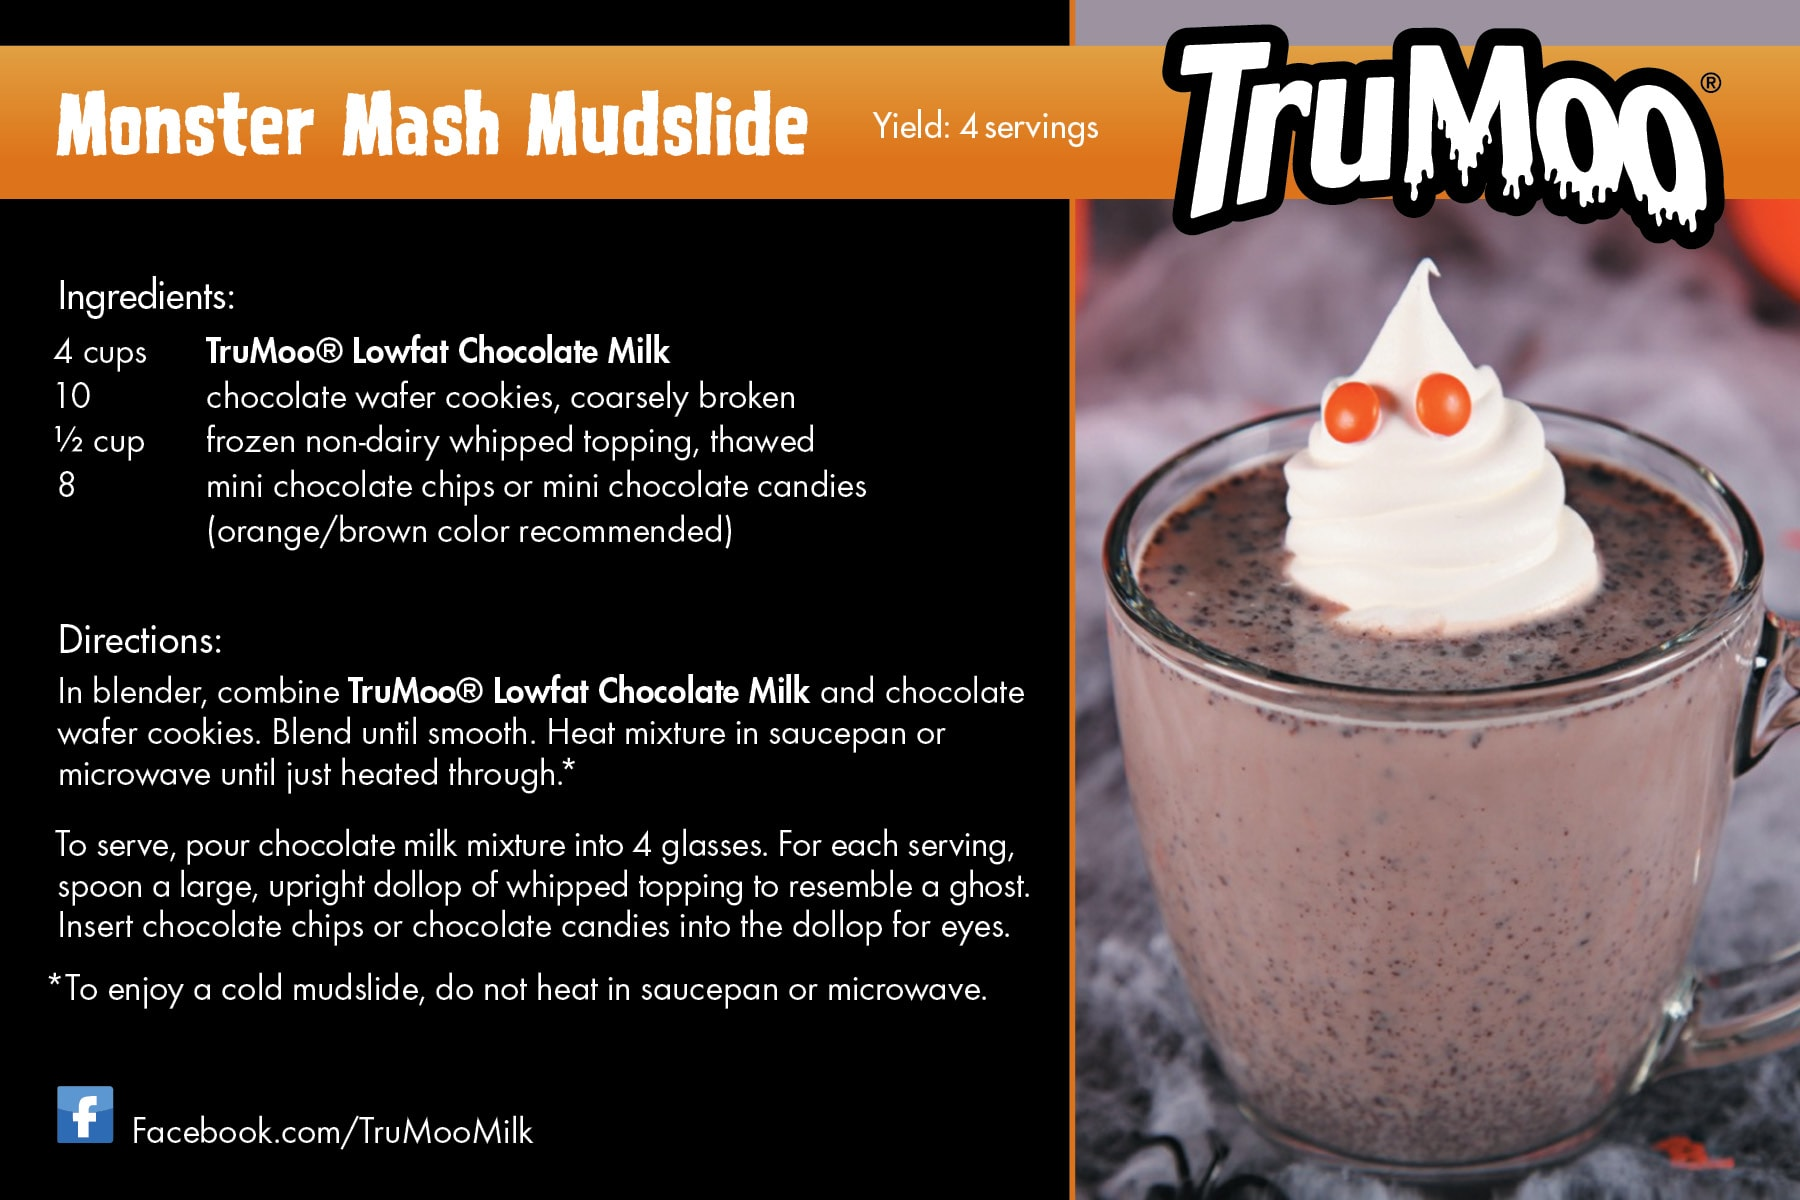 Monster Mash Mudslide Recipe Card